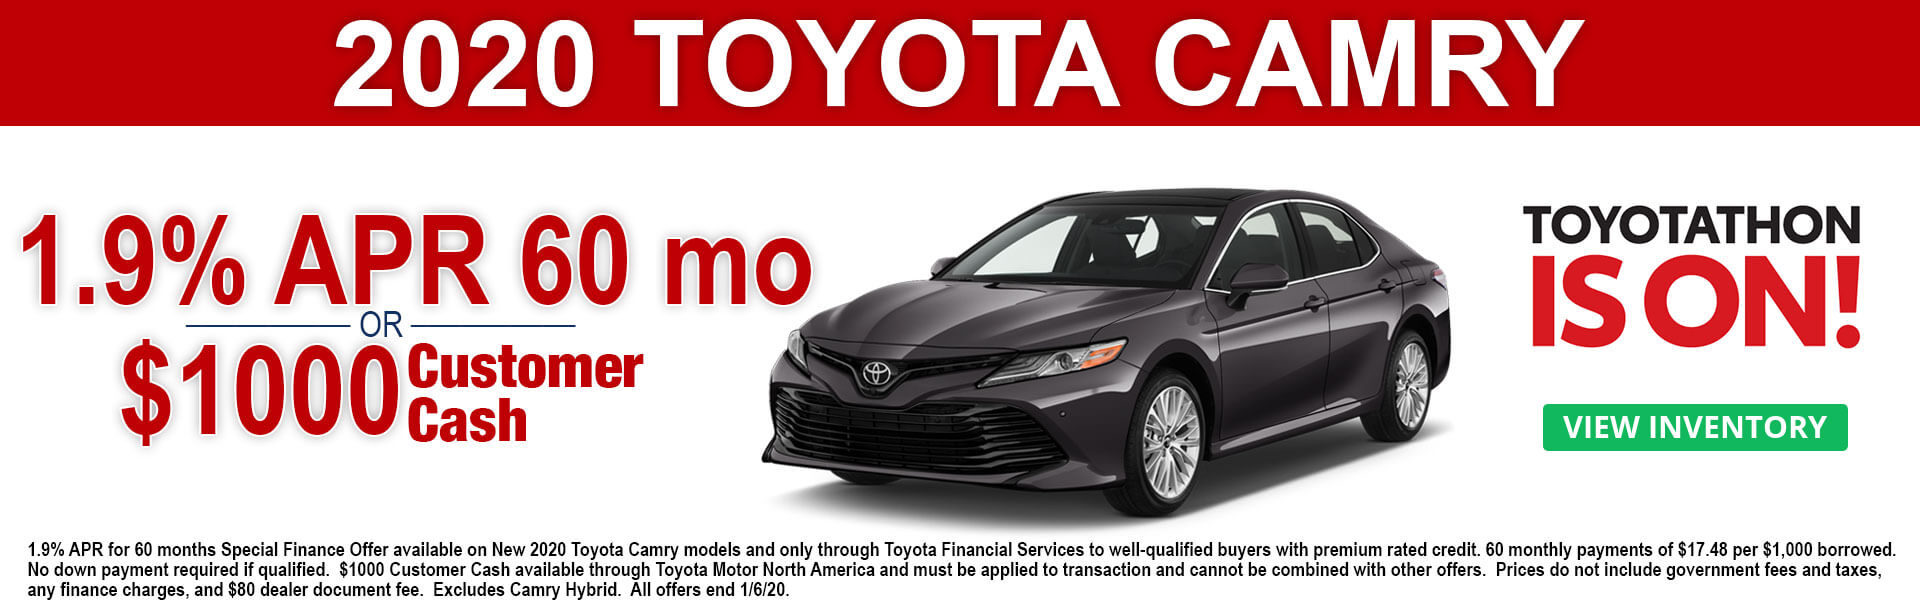 2020 Toyota Camry APR and Cash Offer Toyotathon Is On